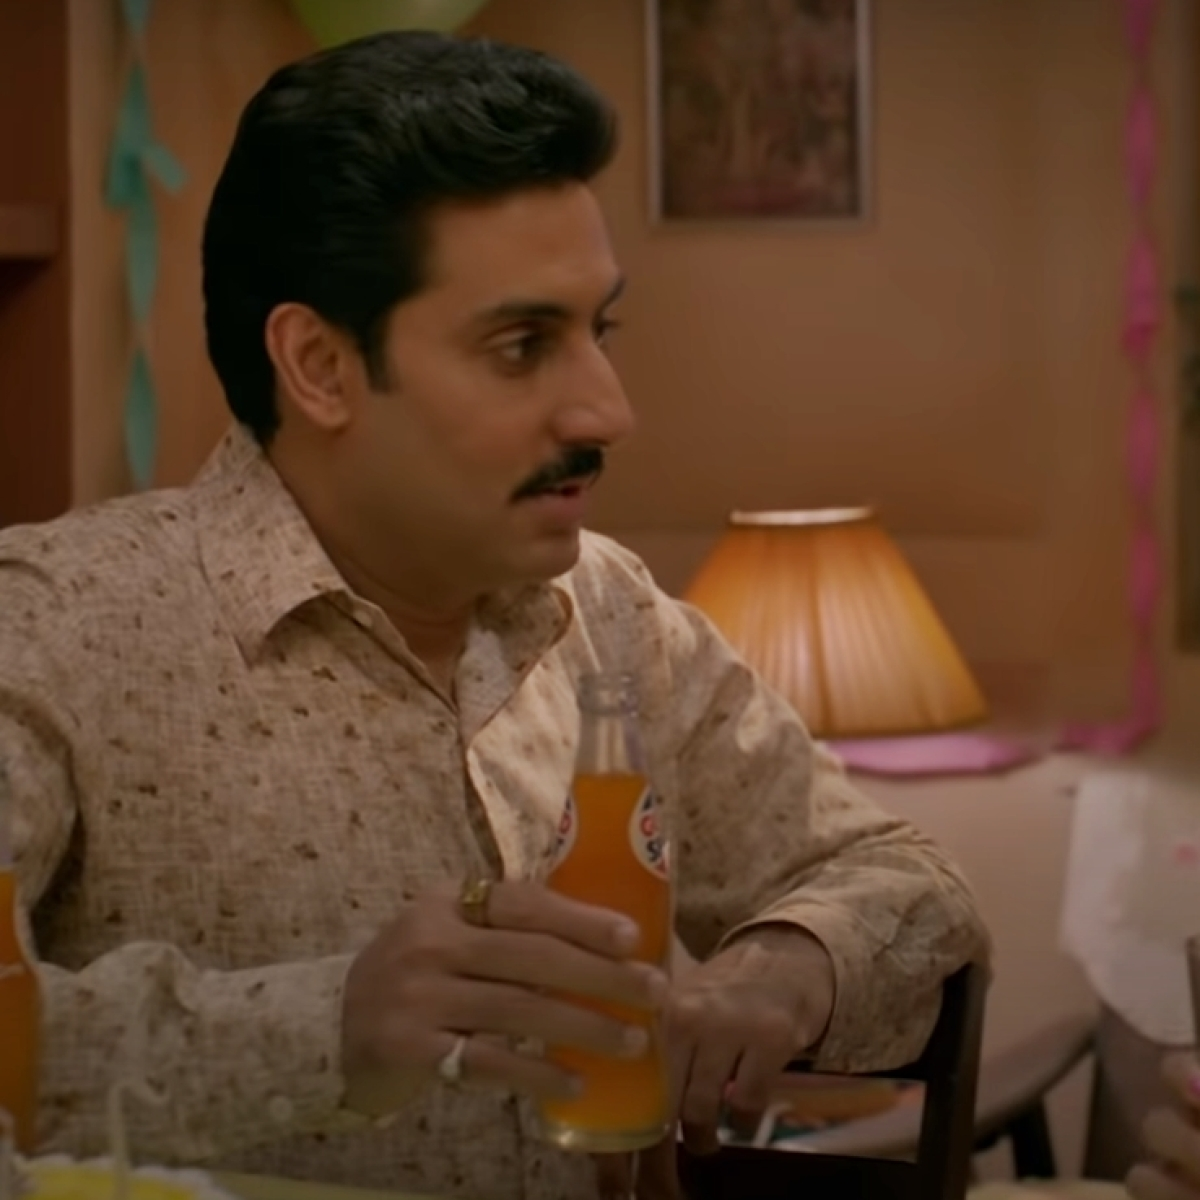 'I was most excited about drinking Gold Spot again': Abhishek Bachchan on 'The Big Bull'